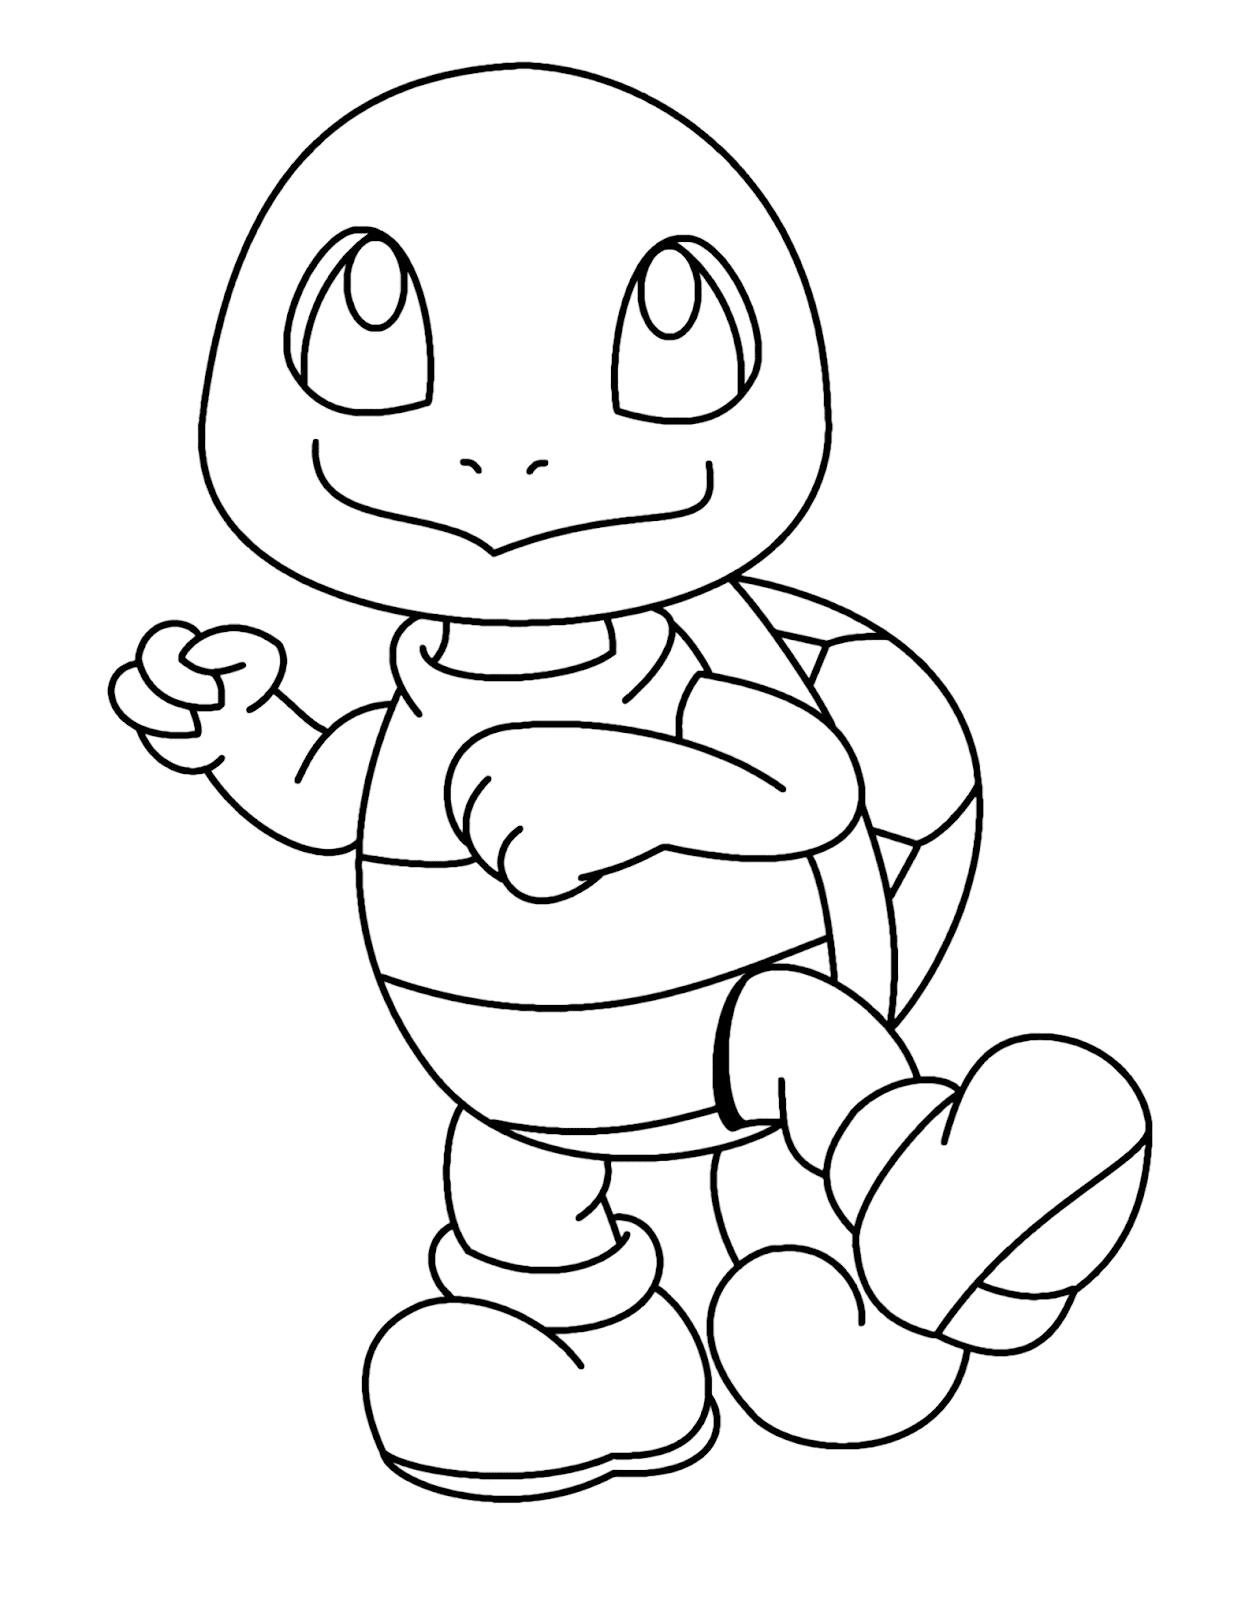 Cute Pokemon Squirtle Coloring Pages In 2020 Pokemon Coloring Pages Pokemon Coloring Coloring Pages